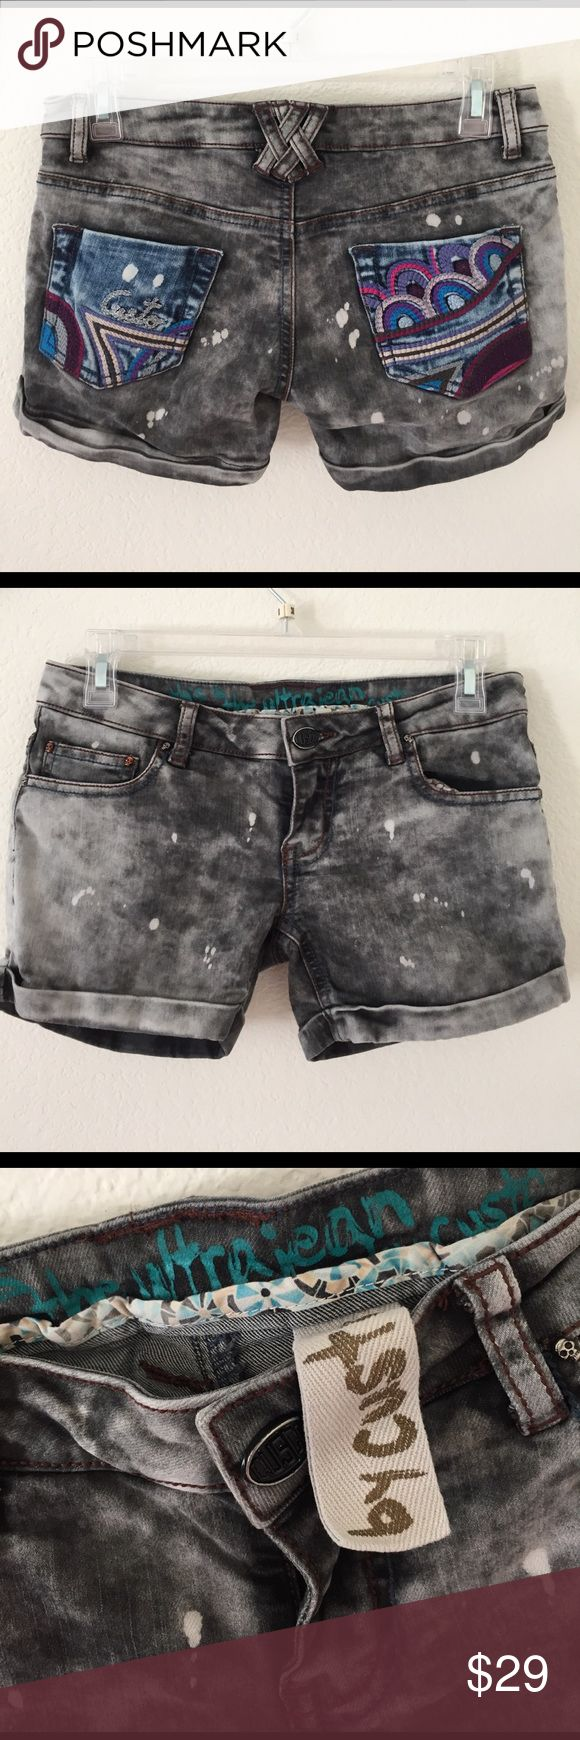 CUSTO BARCELONA Low Waist Distressed Jeans Shorts The Jeans Shorts have distressed used look, with Skulls studs (see photo) and embroidered detail on the back pockets. This short is a PR sample item and was worn at photo shoots for a few times. The condition is very good.➡️ I am selling the other items (Crochet sweater and High Heels) in a separate listing. Check it out! Custo Barcelona Shorts Jean Shorts